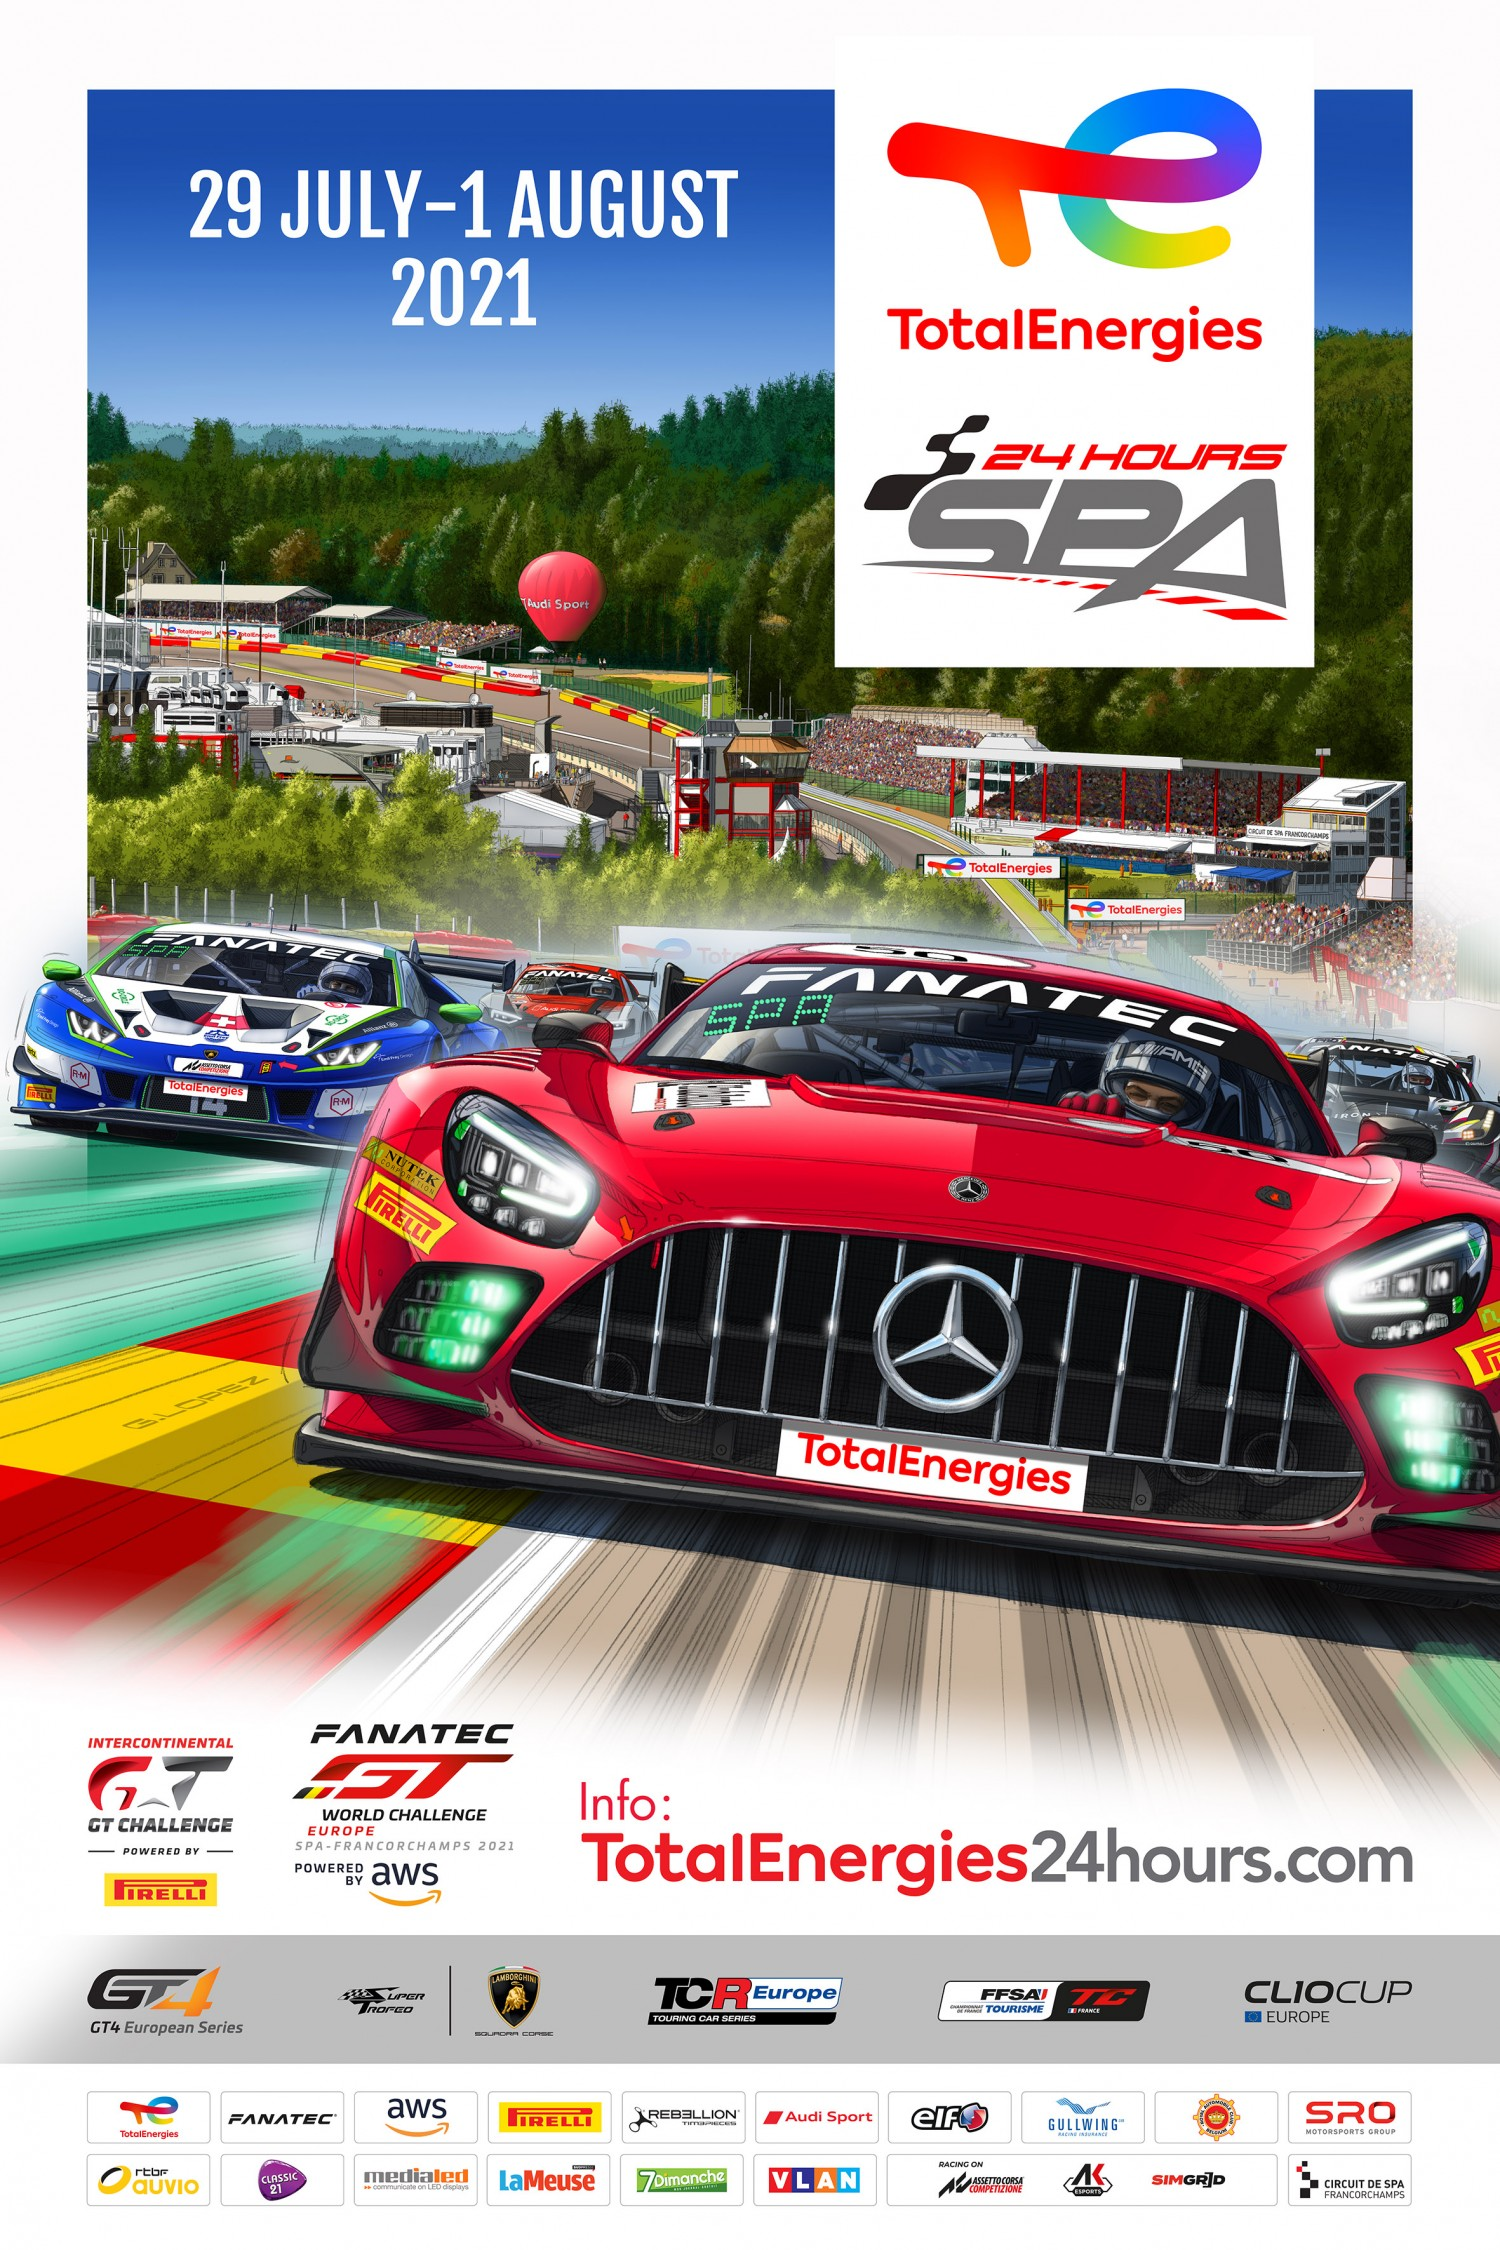 TotalEnergies 24 Hours of Spa launches official poster and timetable, confirms fans will attend